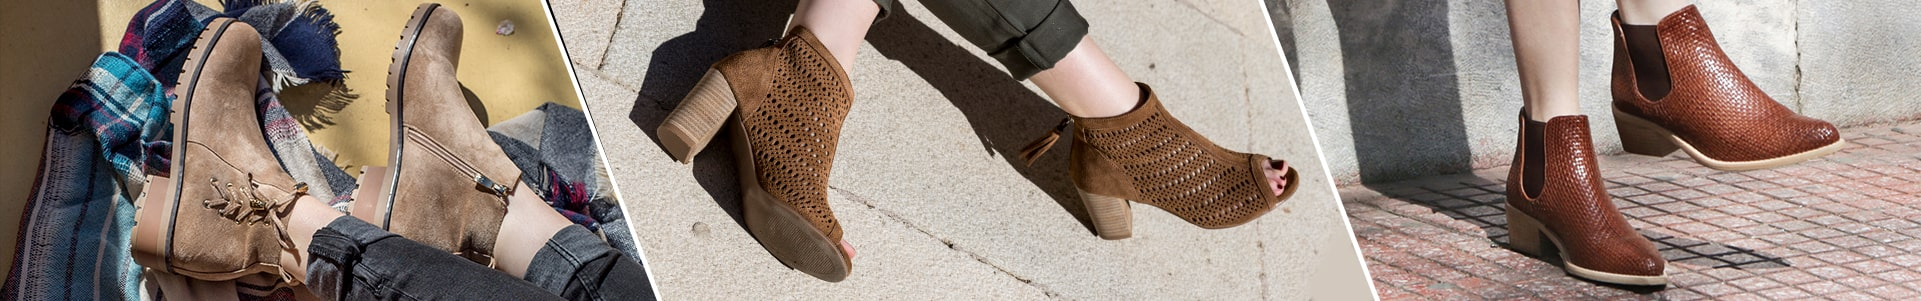 HIGH-HEEL BOOTIES - 40